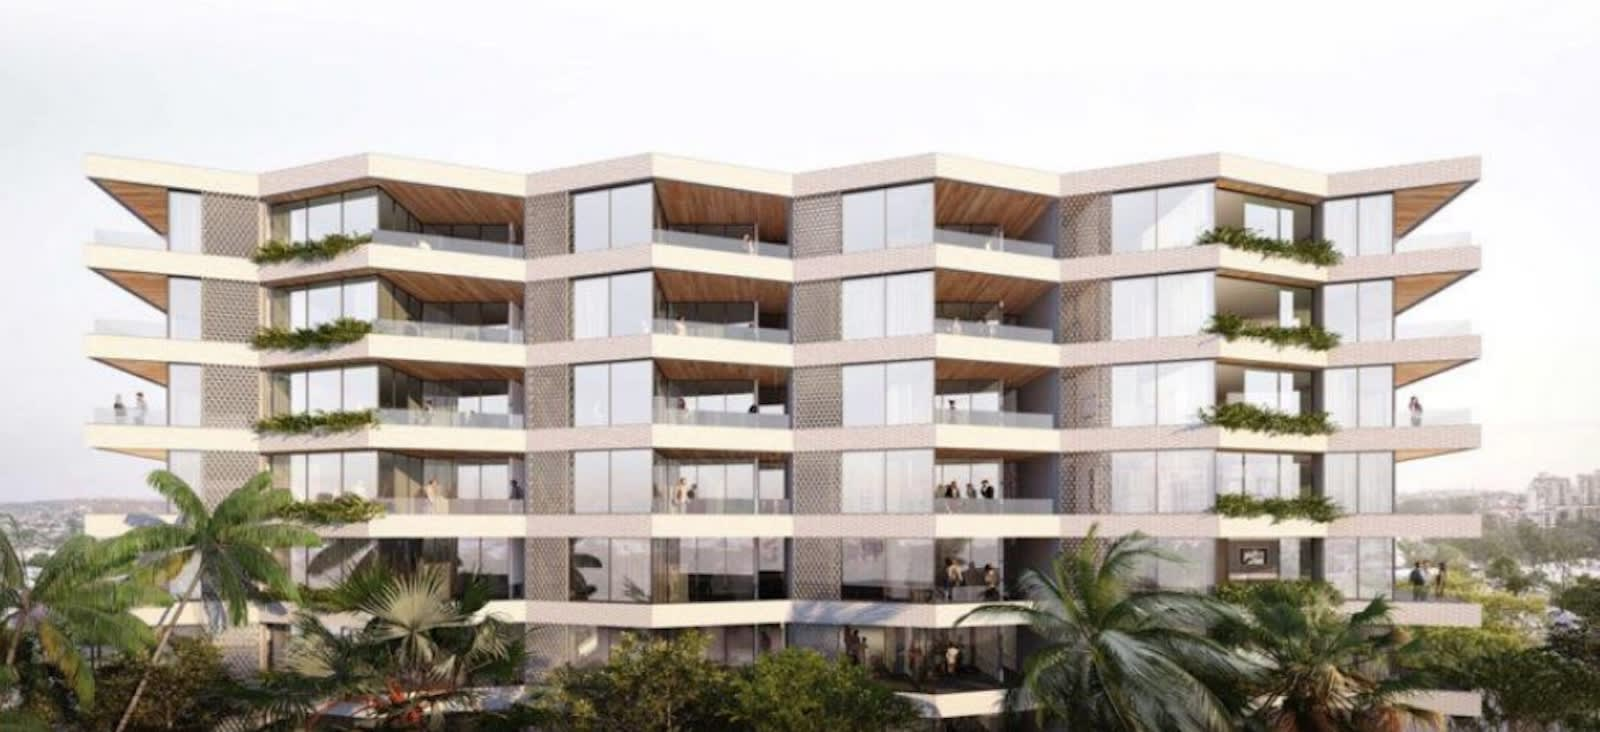 Aria Property Group receive approval for new Kangaroo Point apartment development Riviere